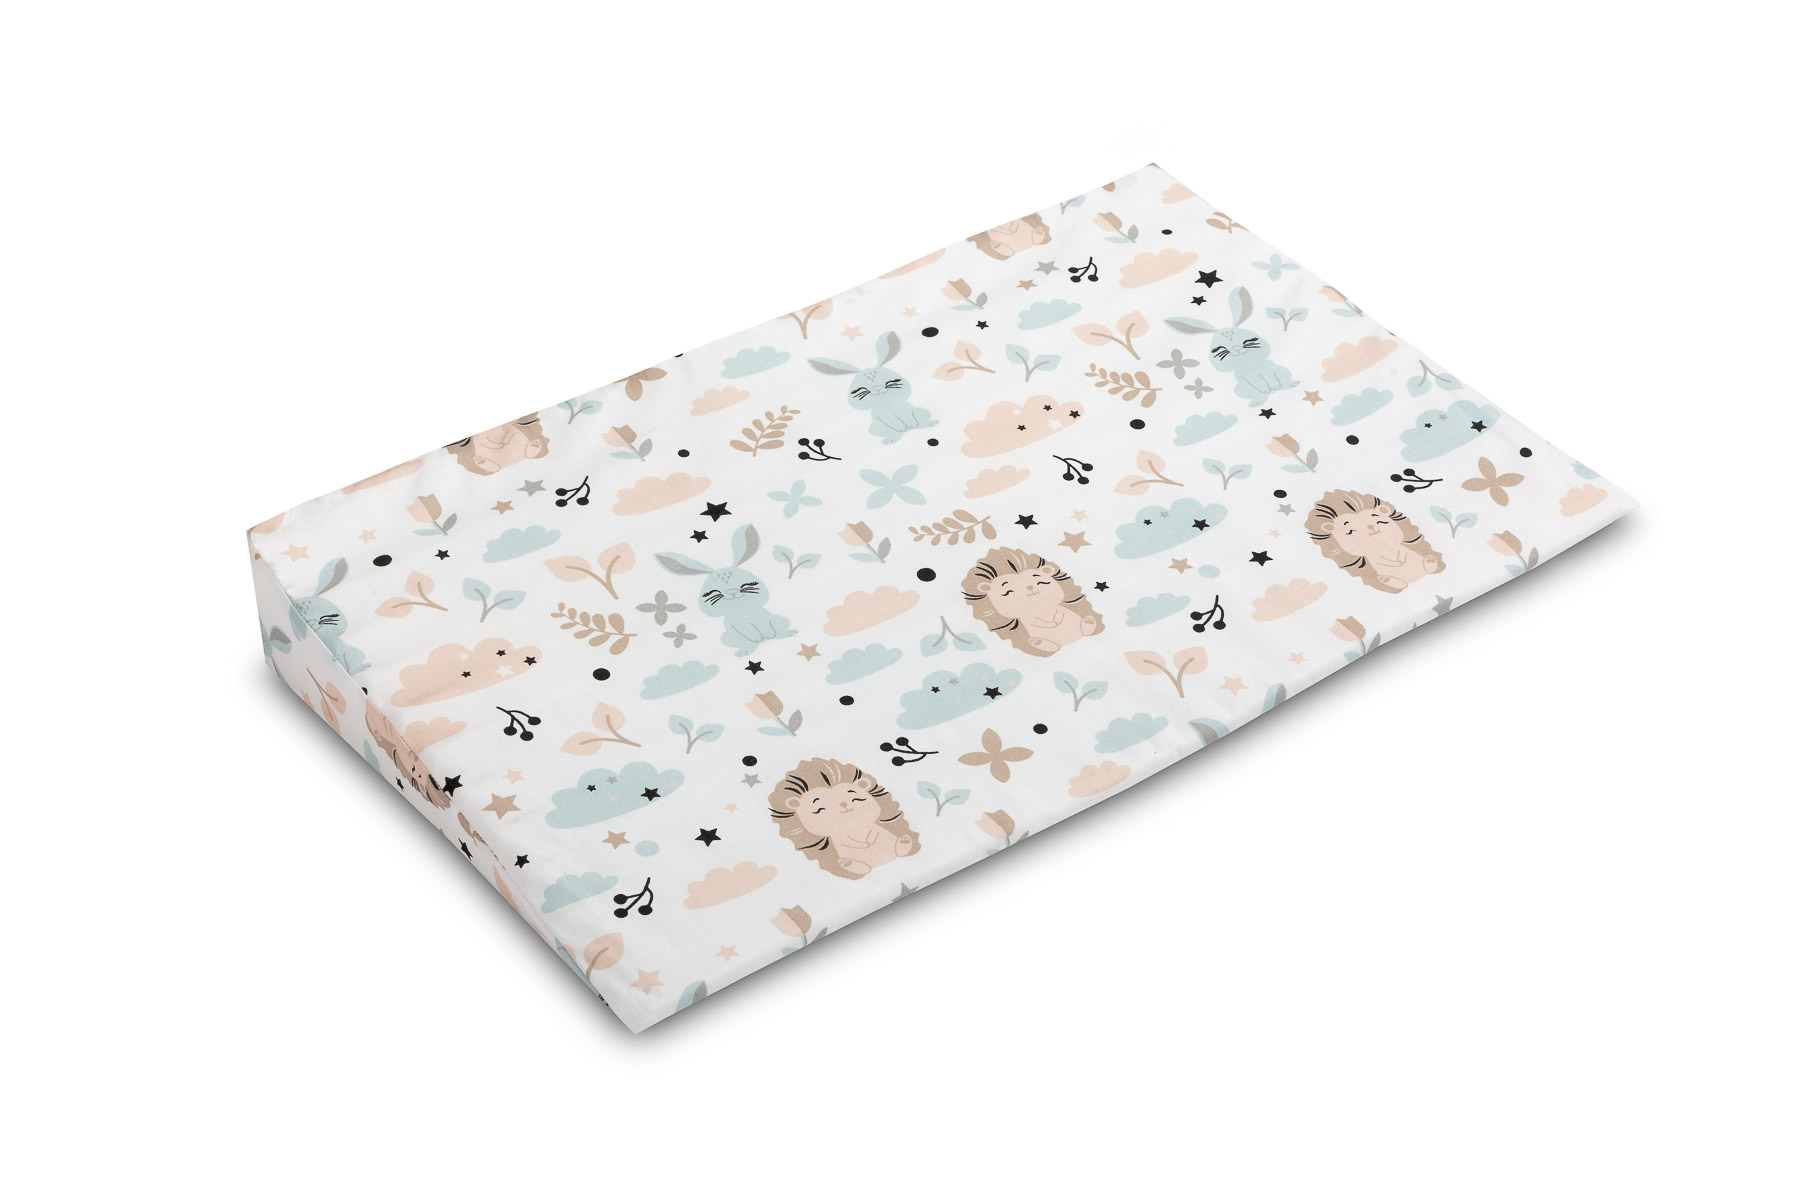 38×60 Wedge Pillowcases – hedgehog and rabbit